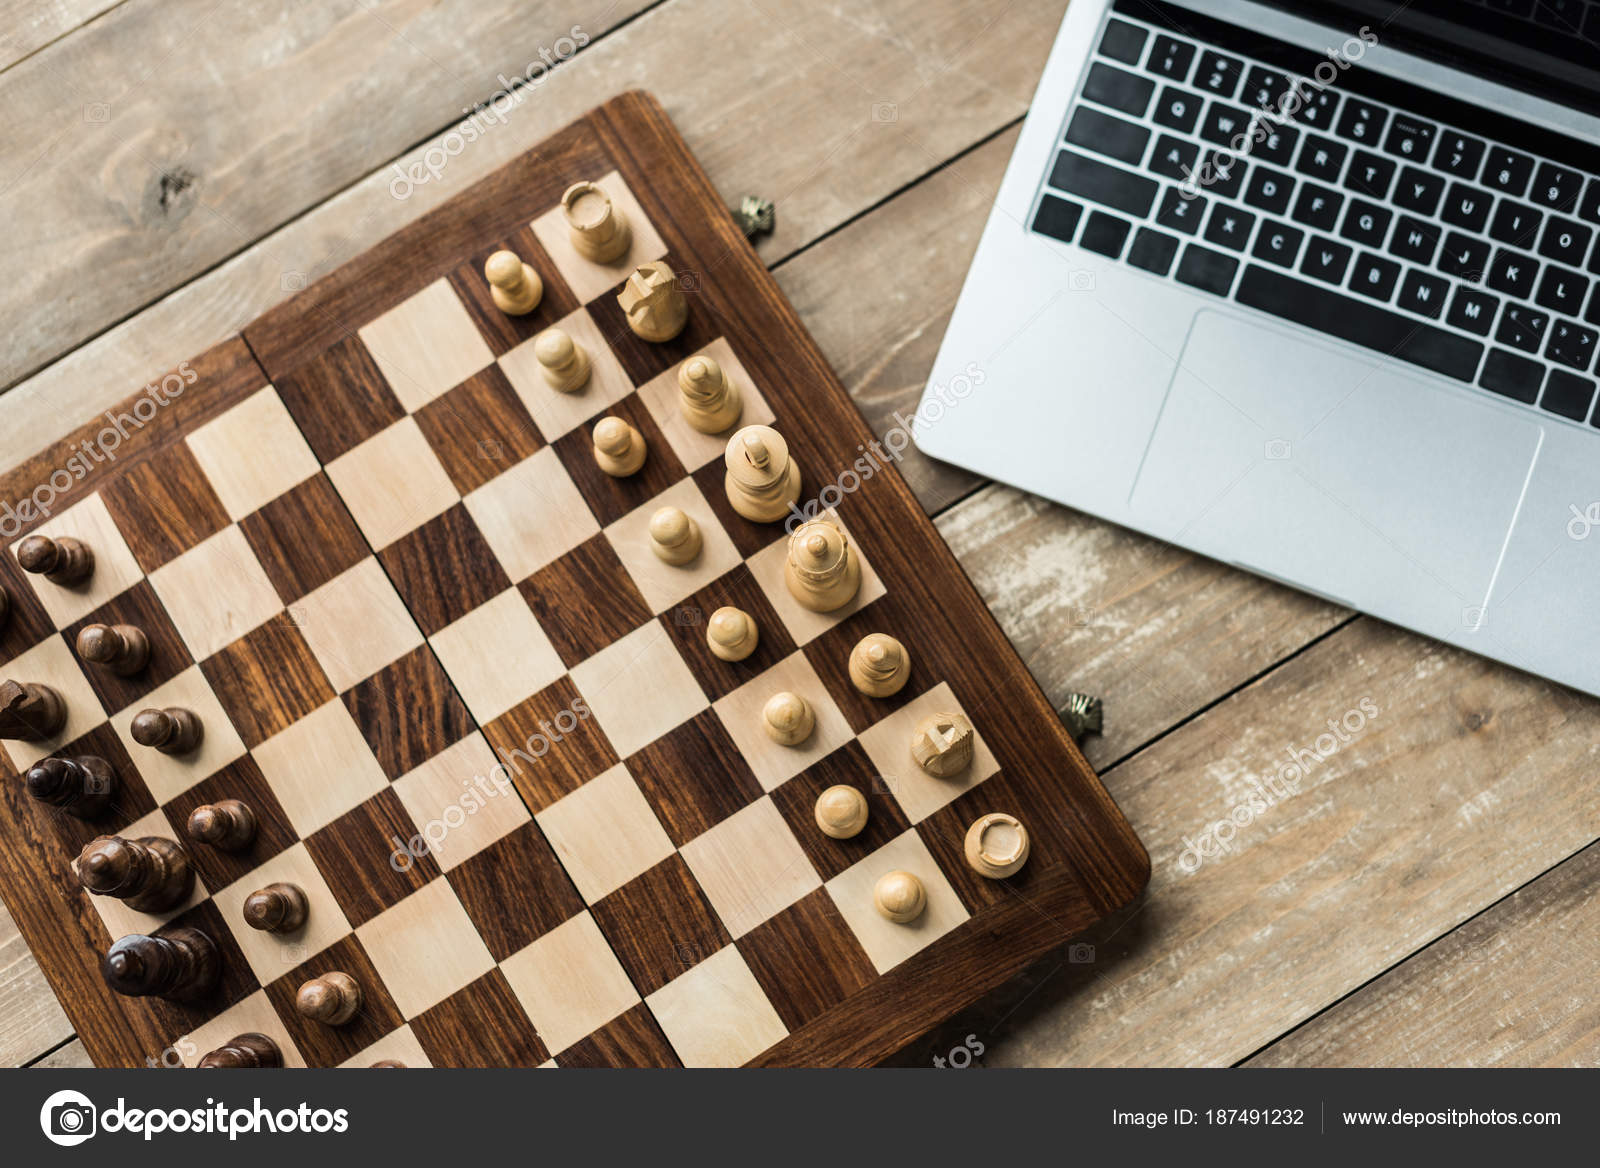 Laptop Chess Board Figures Rustic Wooden Surface U2014 Stock Photo